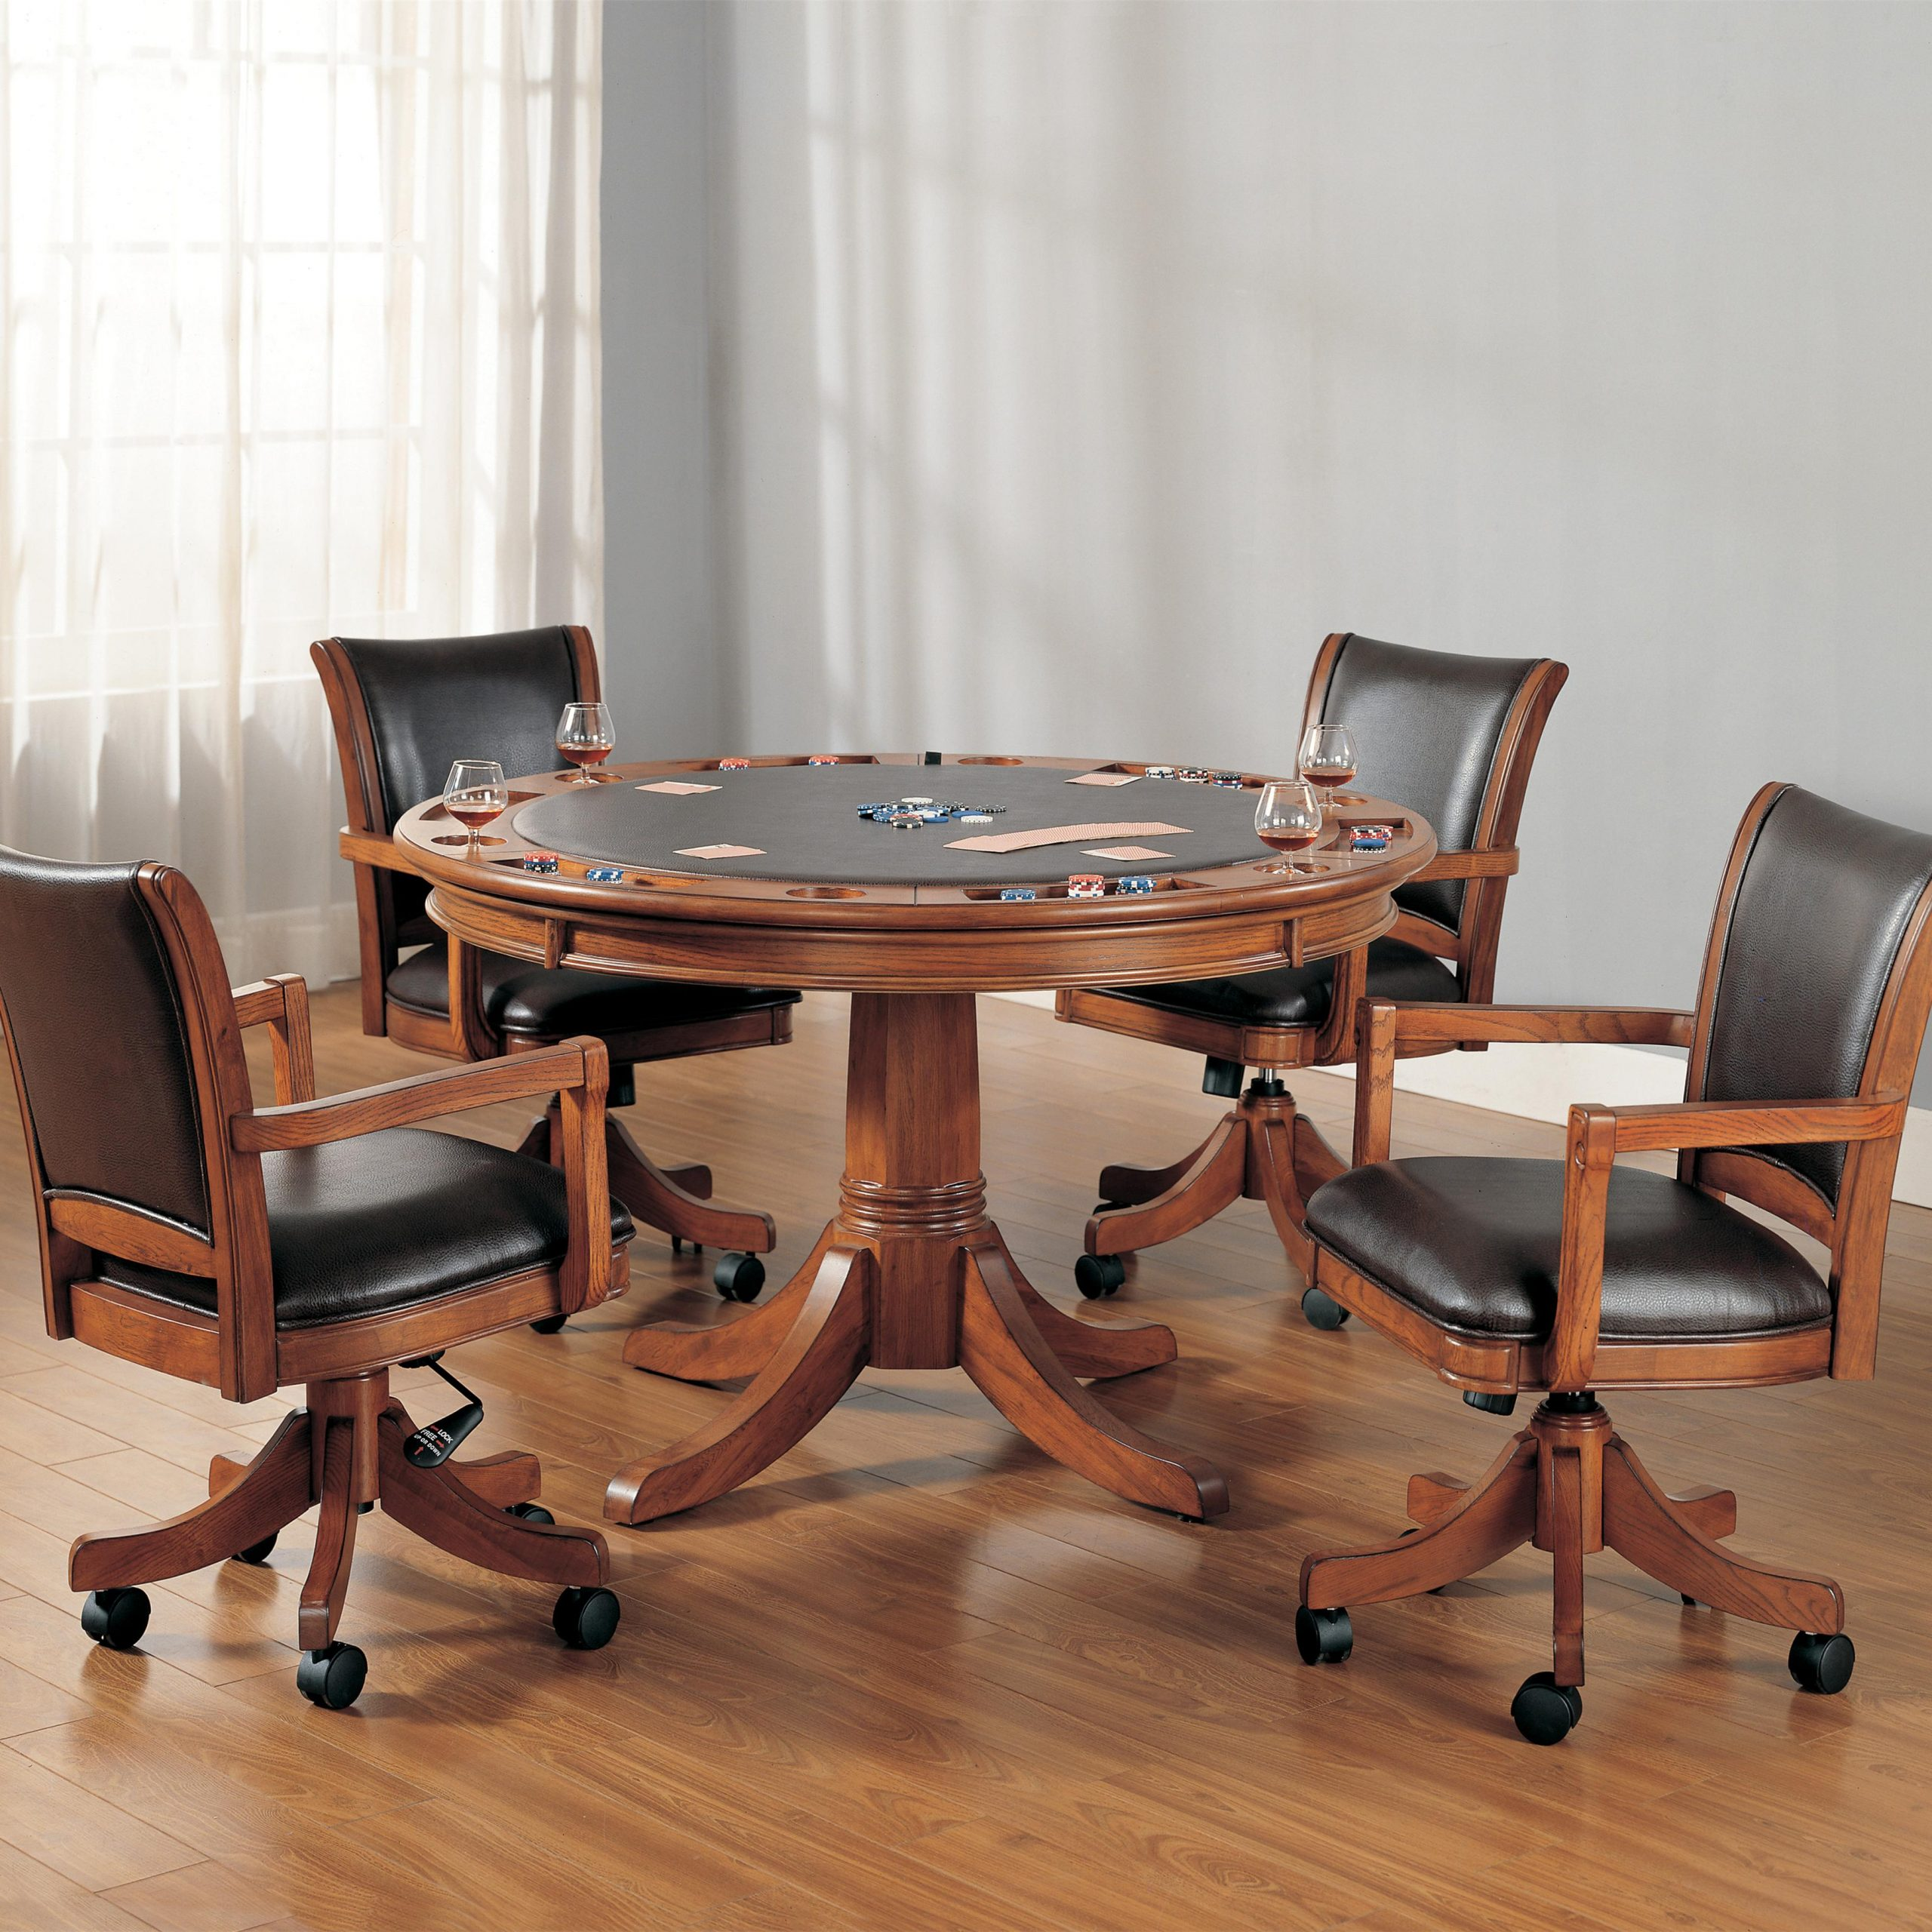 dining room chairs on wheels